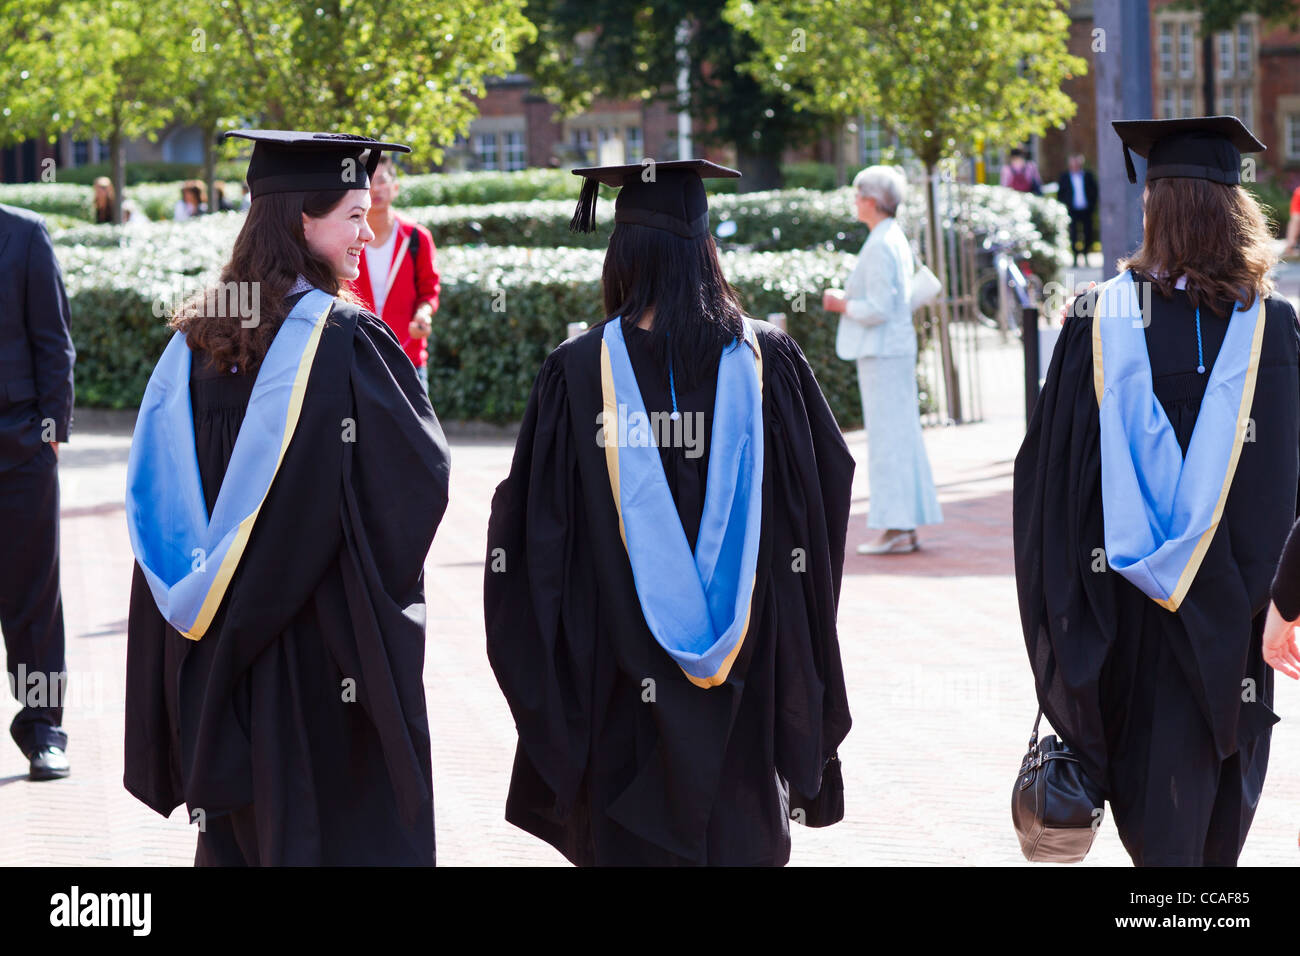 University Of Southampton Graduates Dressed In Their Gowns And Mortar Stock Photo Alamy